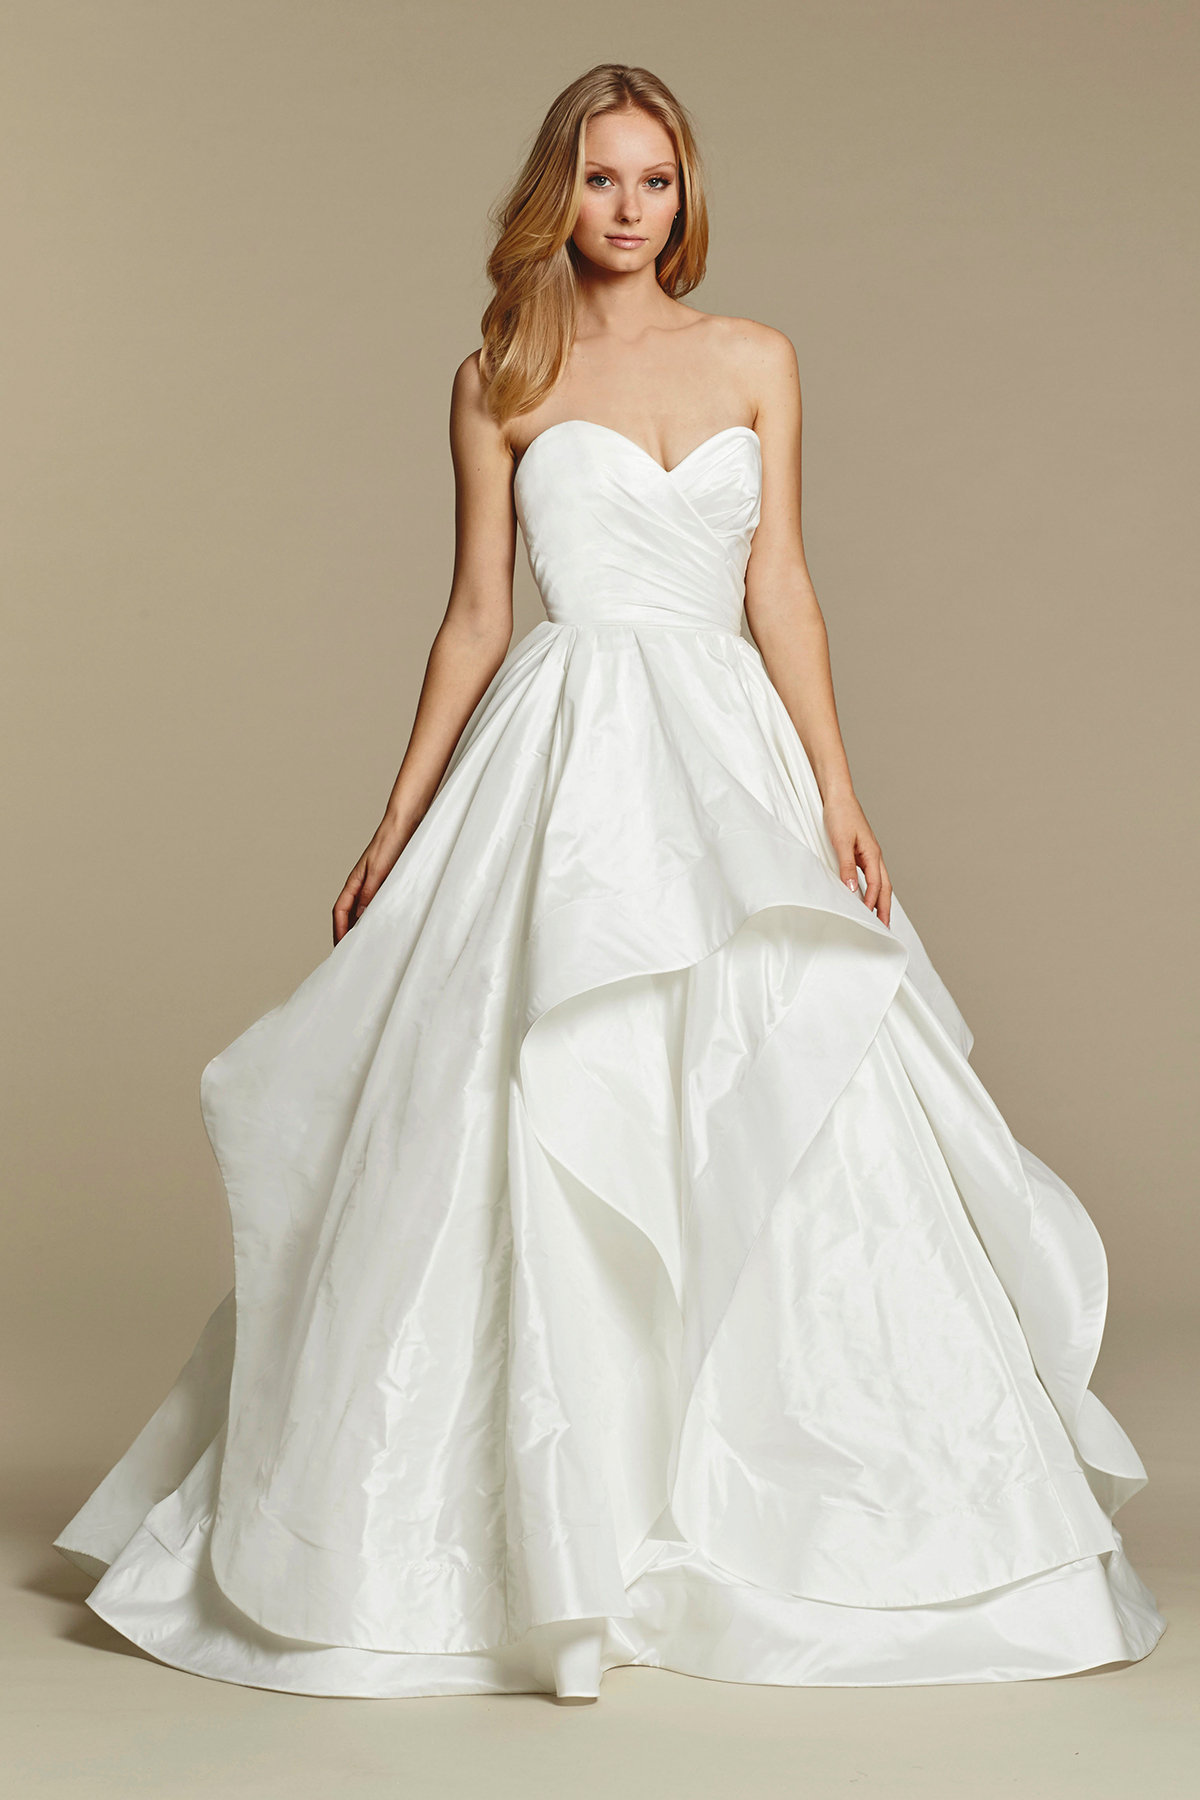 Bridal gowns and wedding dresses by jlm couture style 1602 for Hayley paige wedding dresses